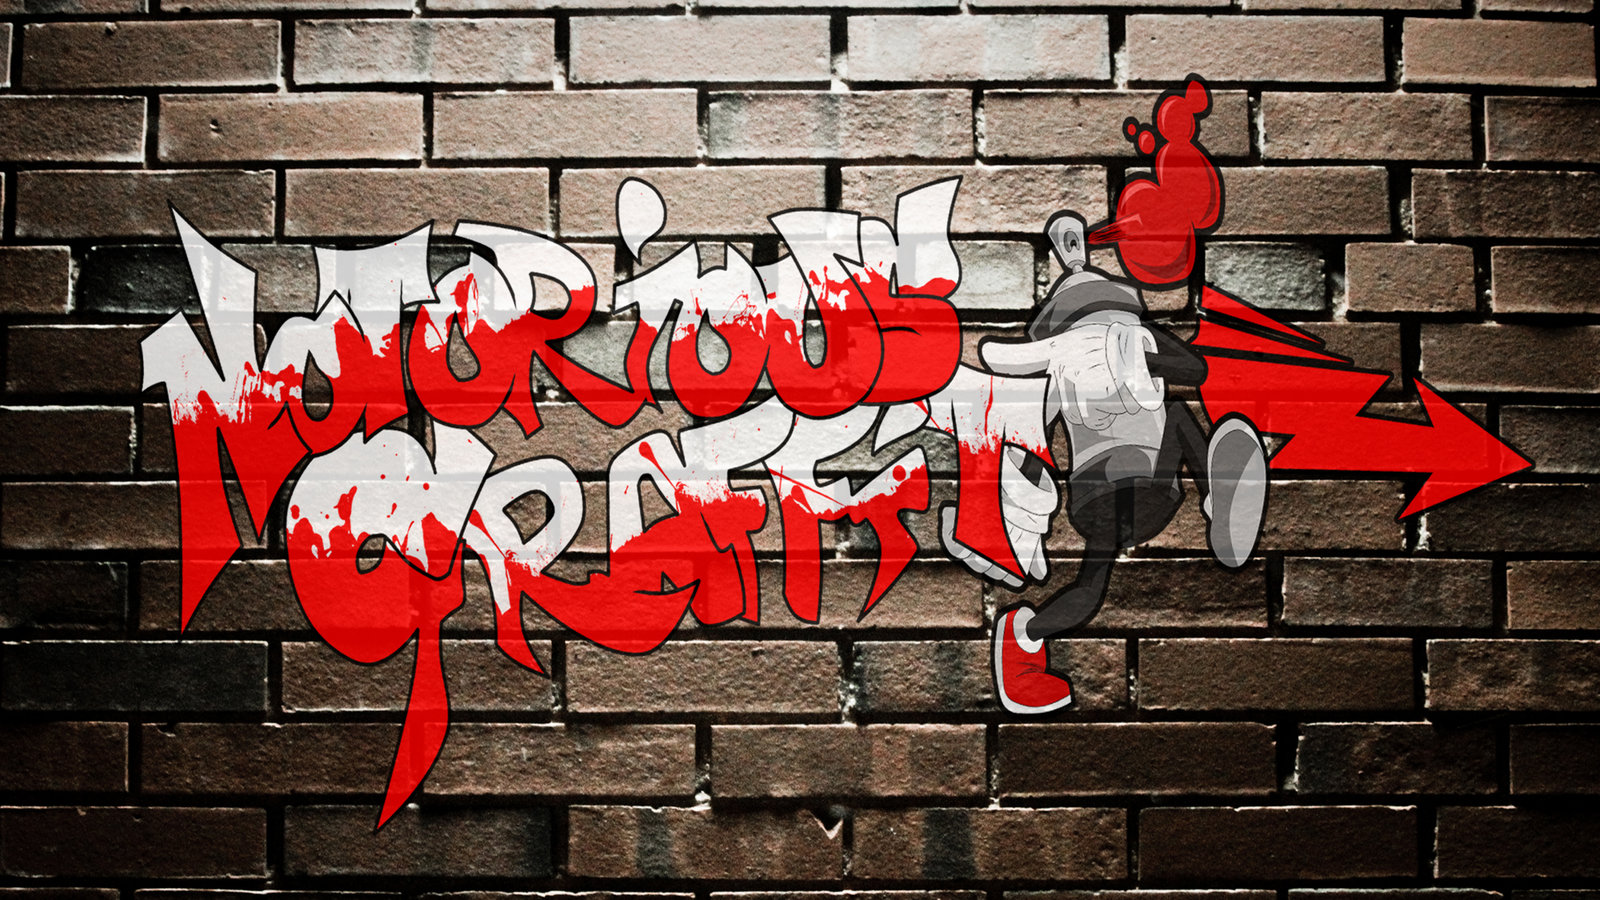 A banner used on multiple occasions for Notorious Graffiti